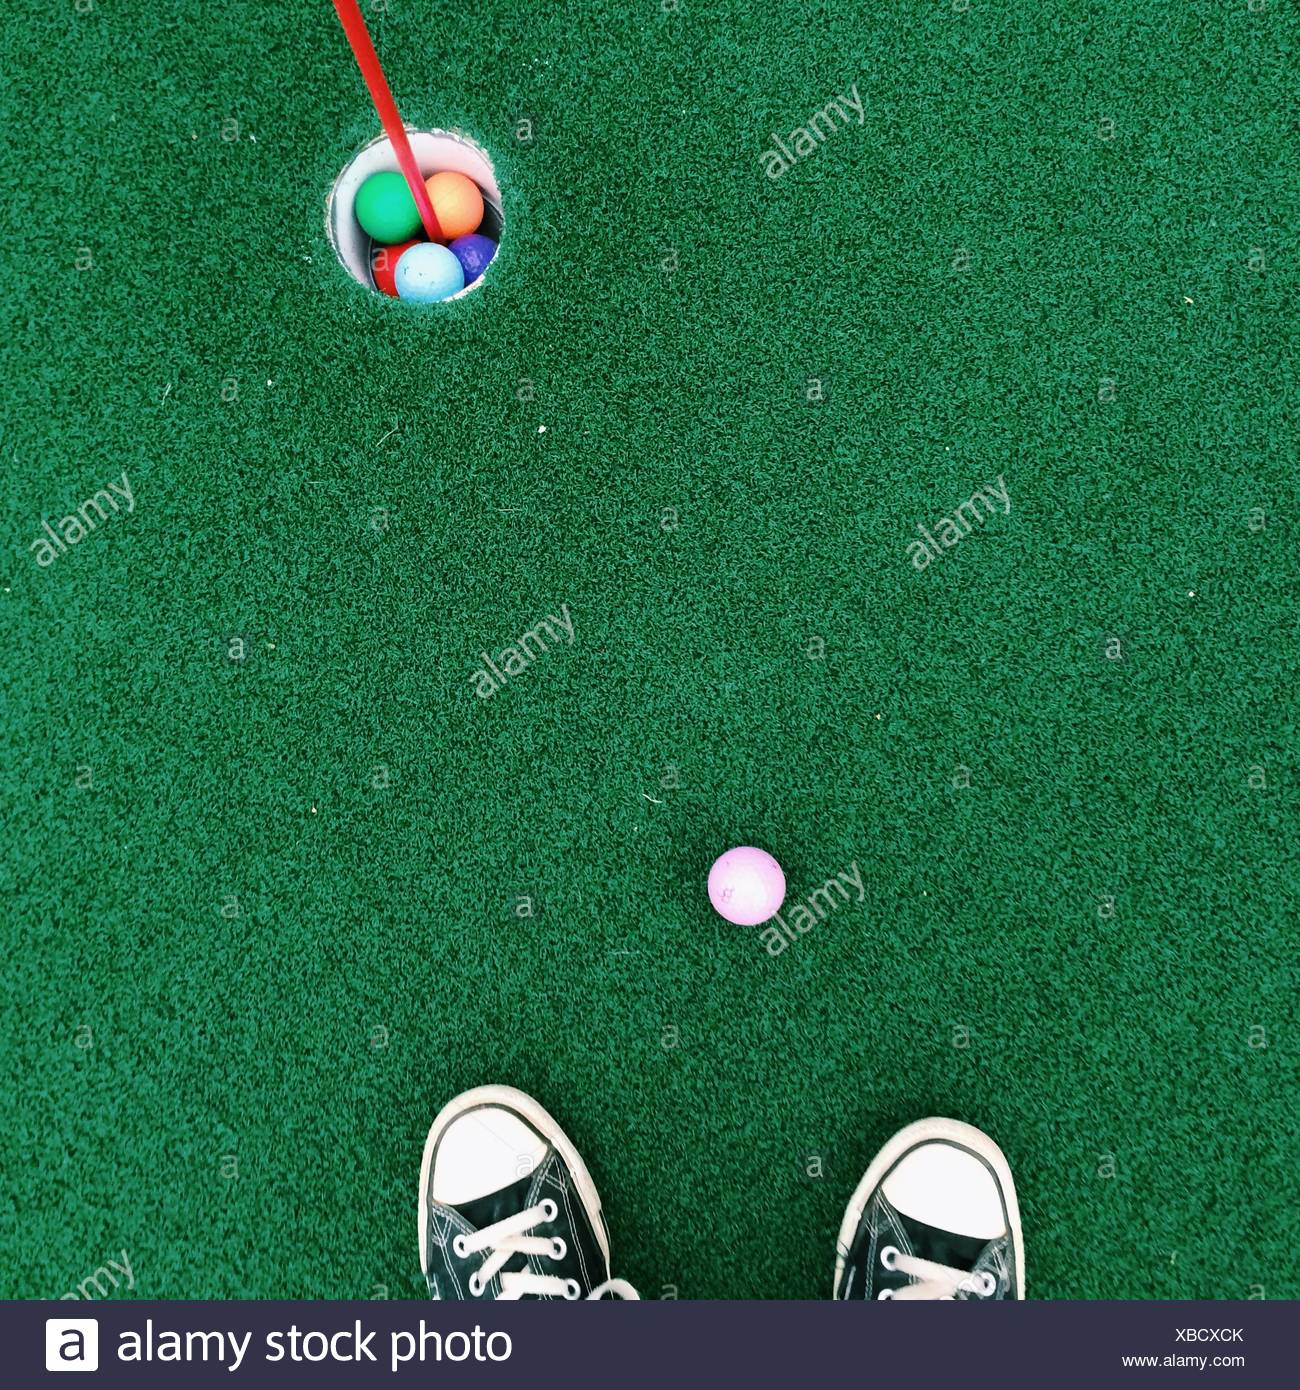 Feet on putting green - Stock Image